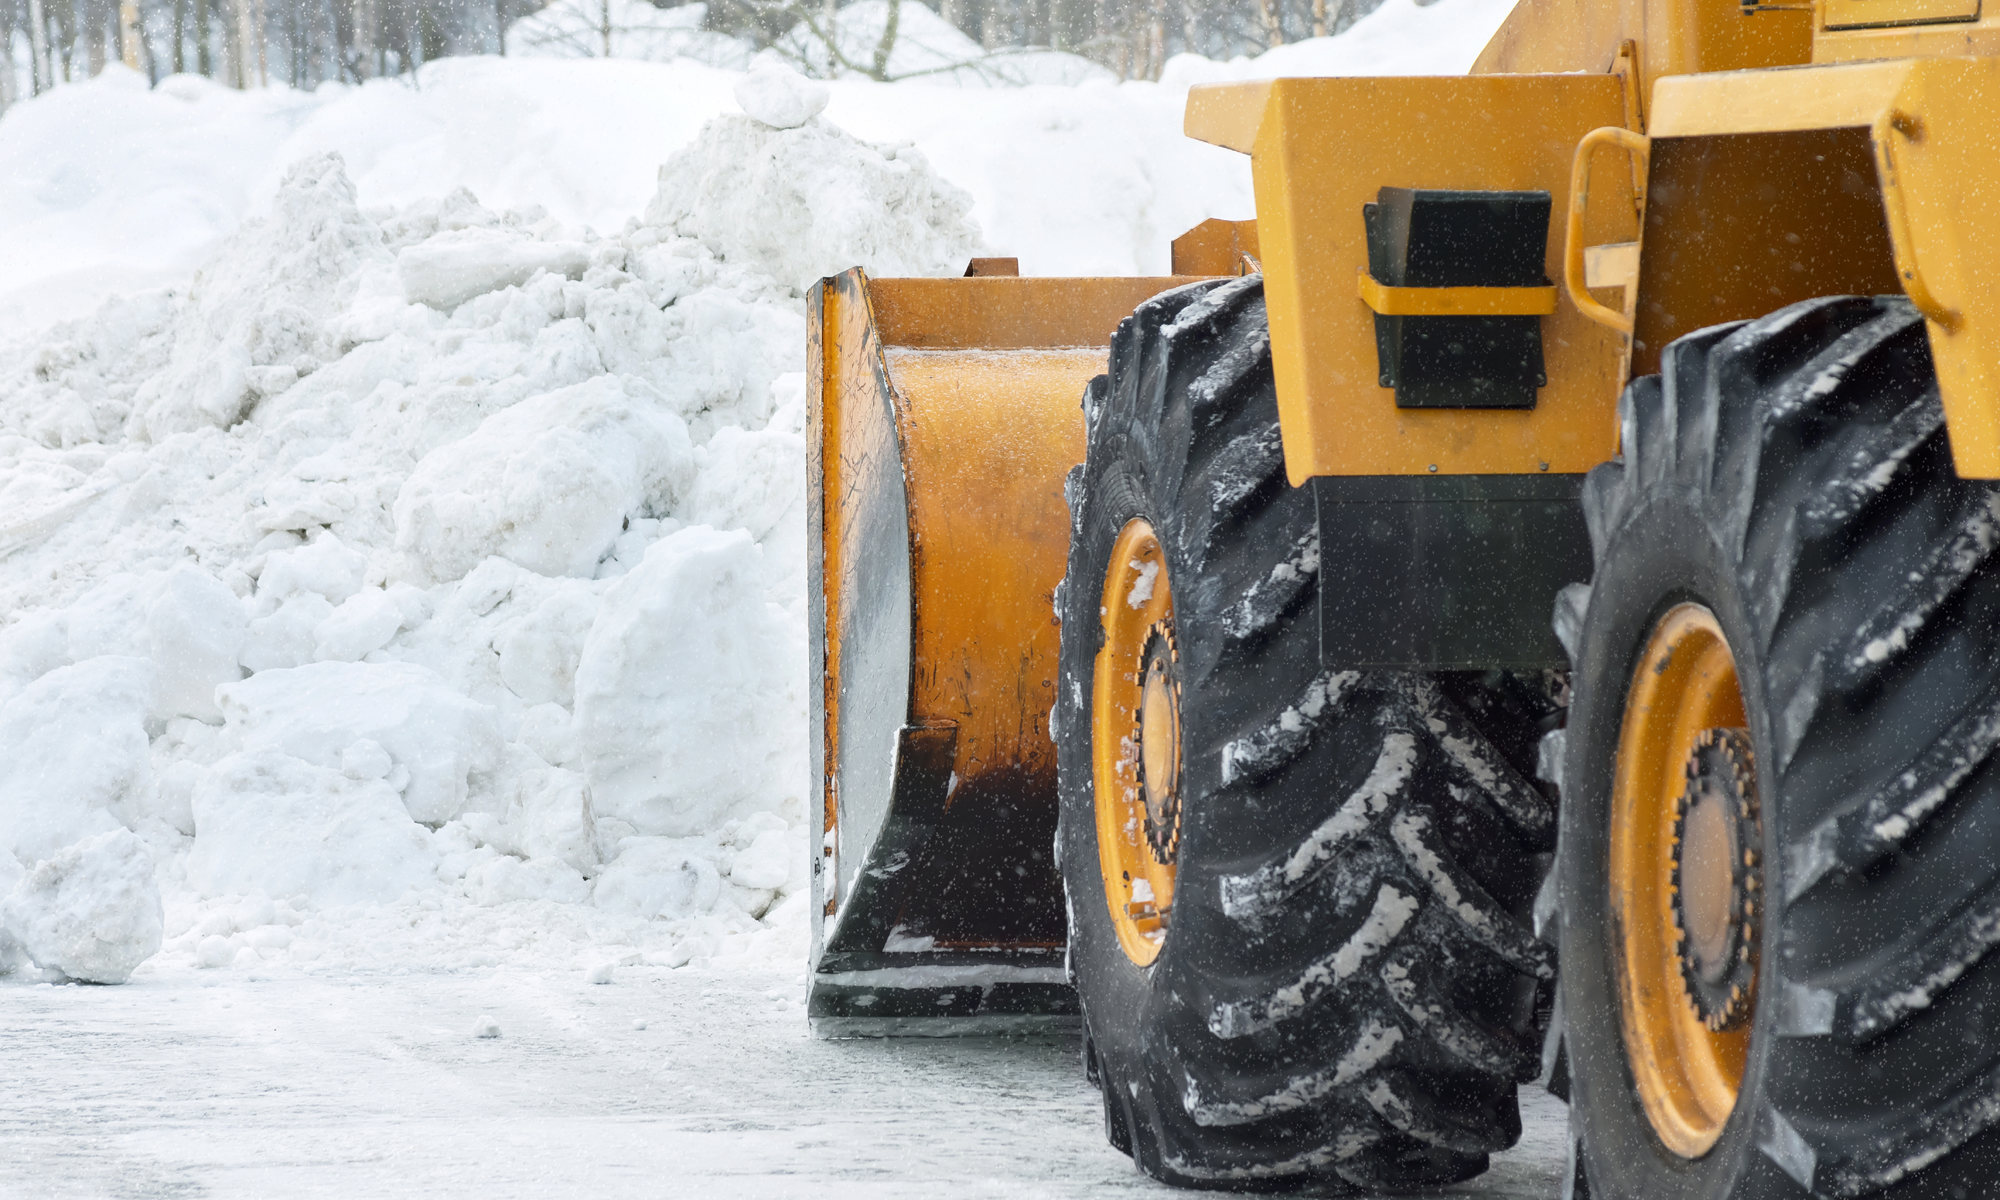 DecoMax Landscaping Commercial Winter Snow Removal